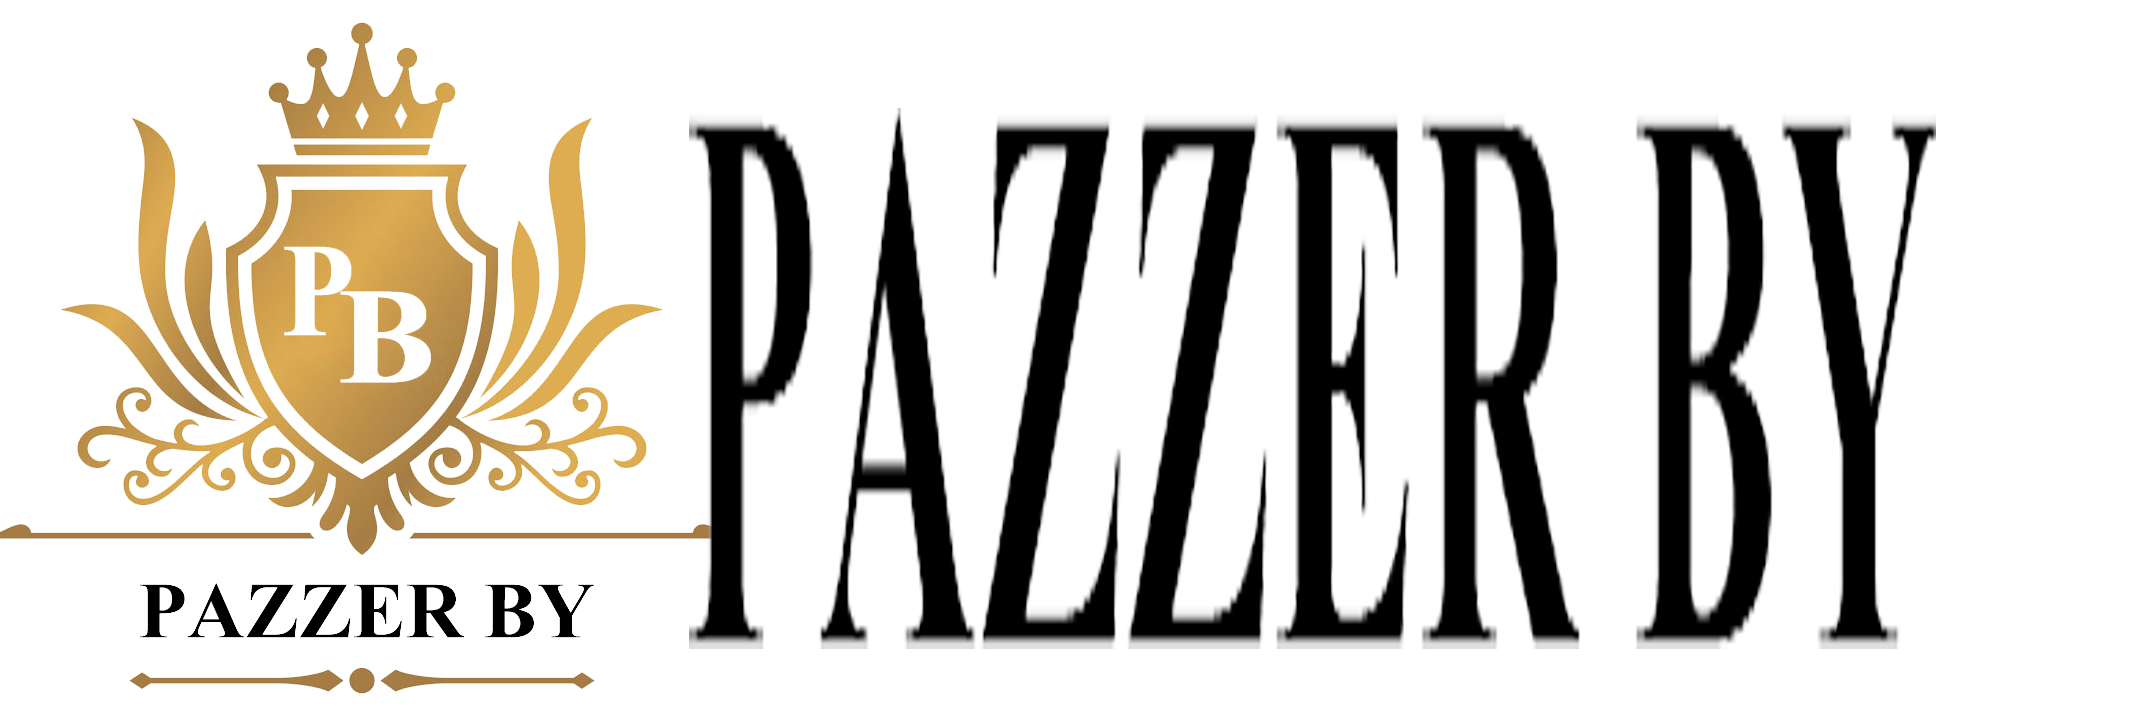 pazzerby